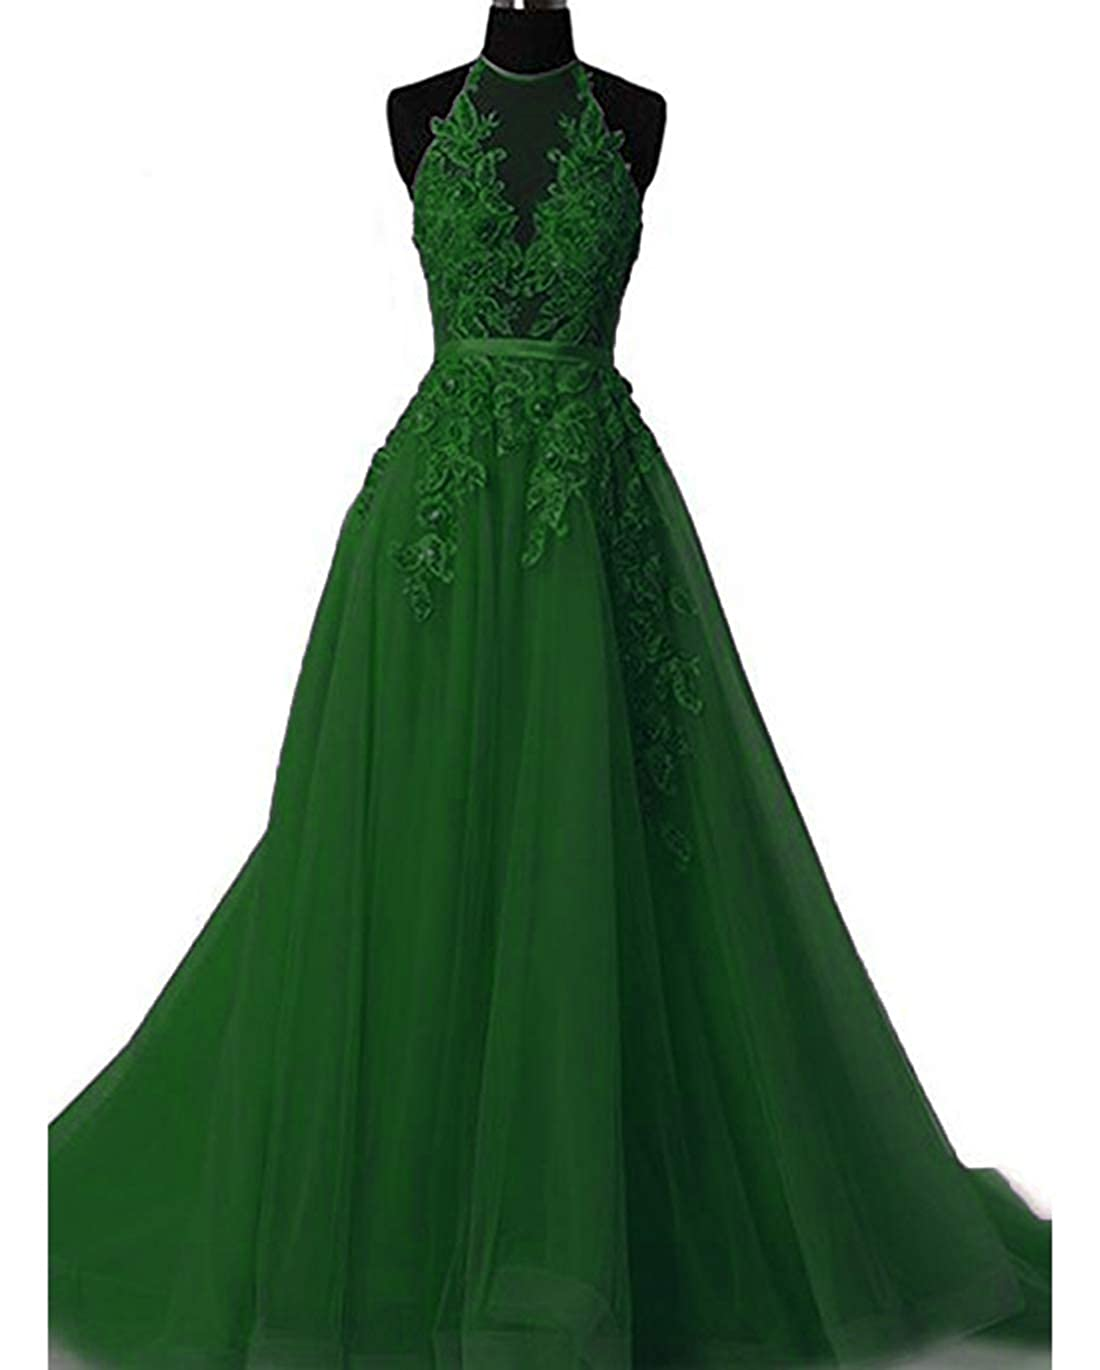 Green olise bridal Sexy Women's Halter Prom Dresses Long 2019 Appliques Backless Evening Fomral Gowns Real Photo